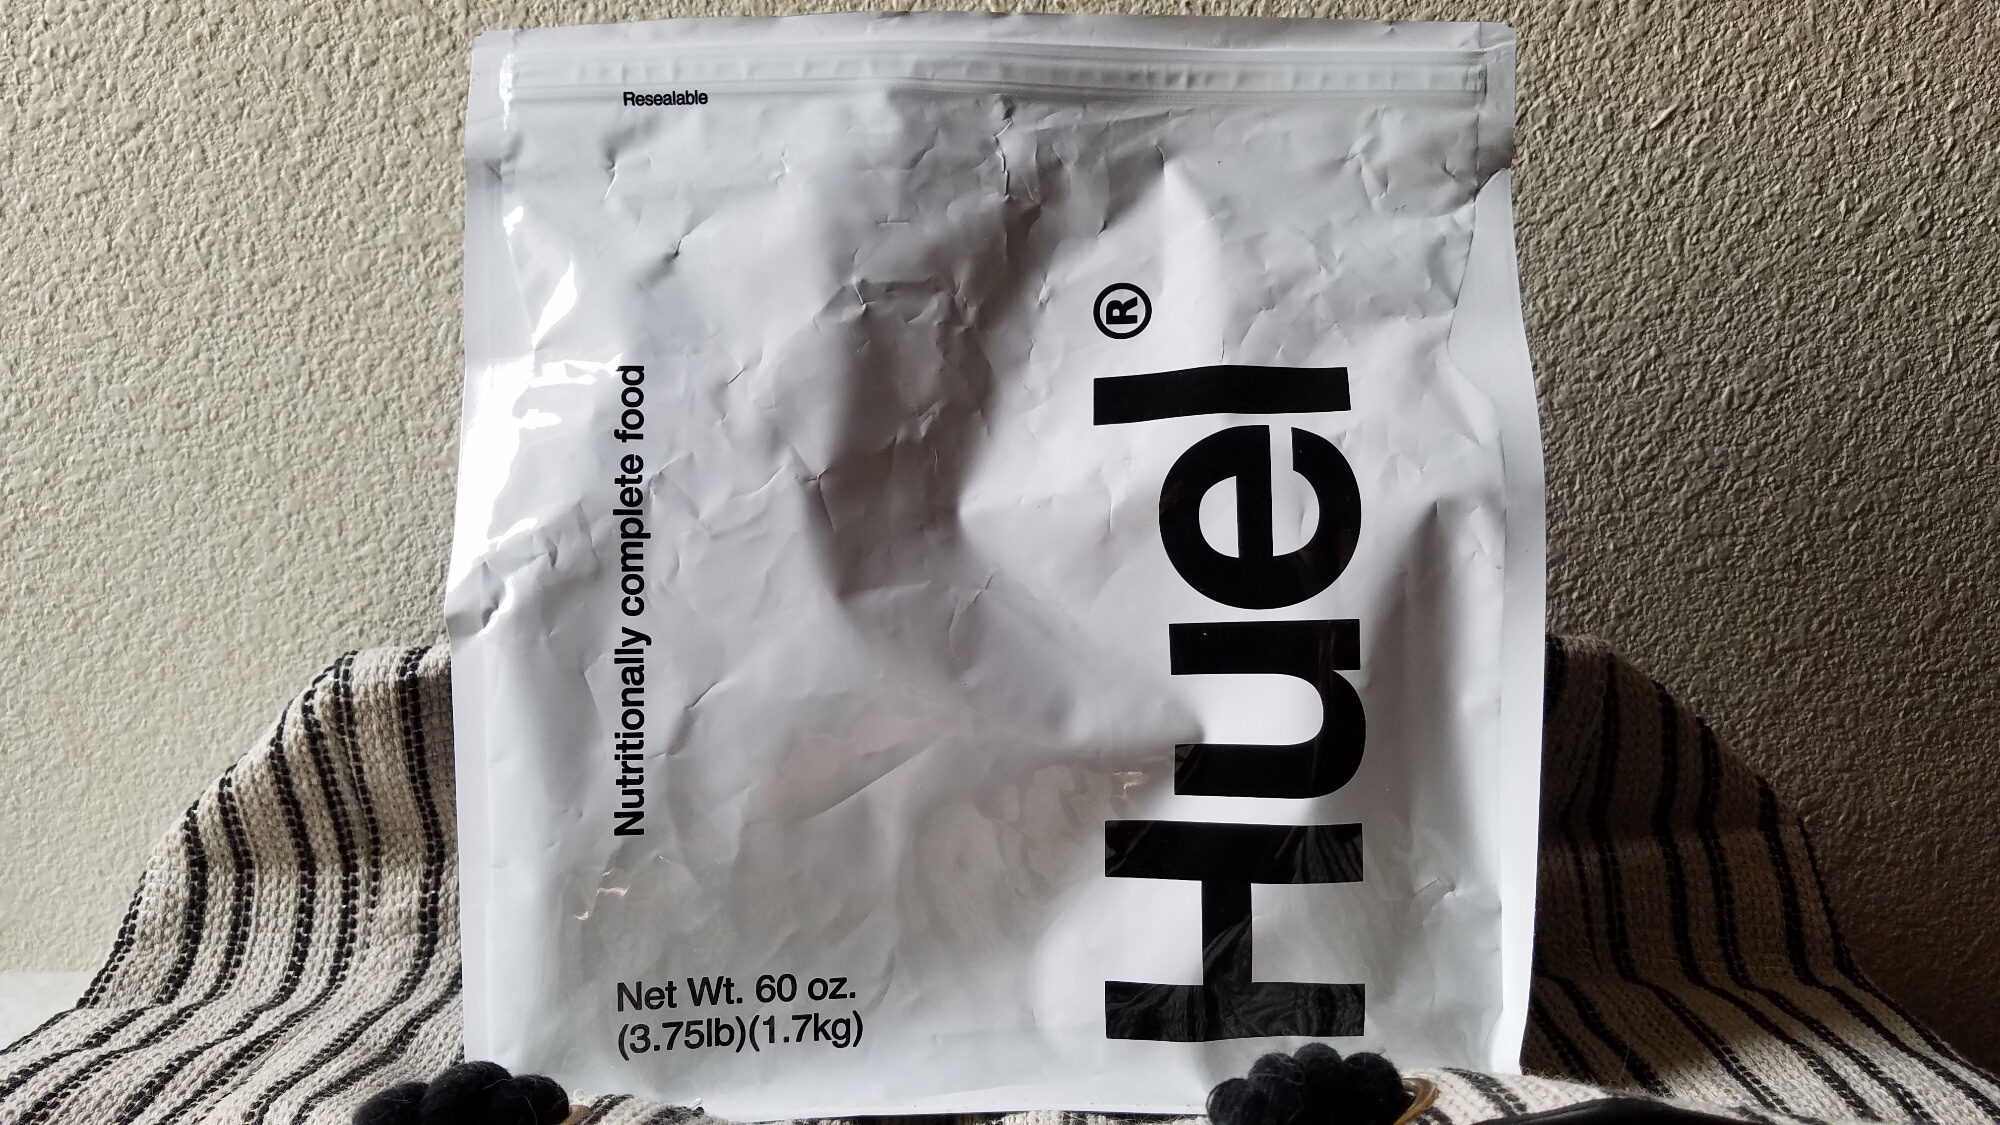 Huel Powdered Meal Replacement - Chocolate Flavor - Product